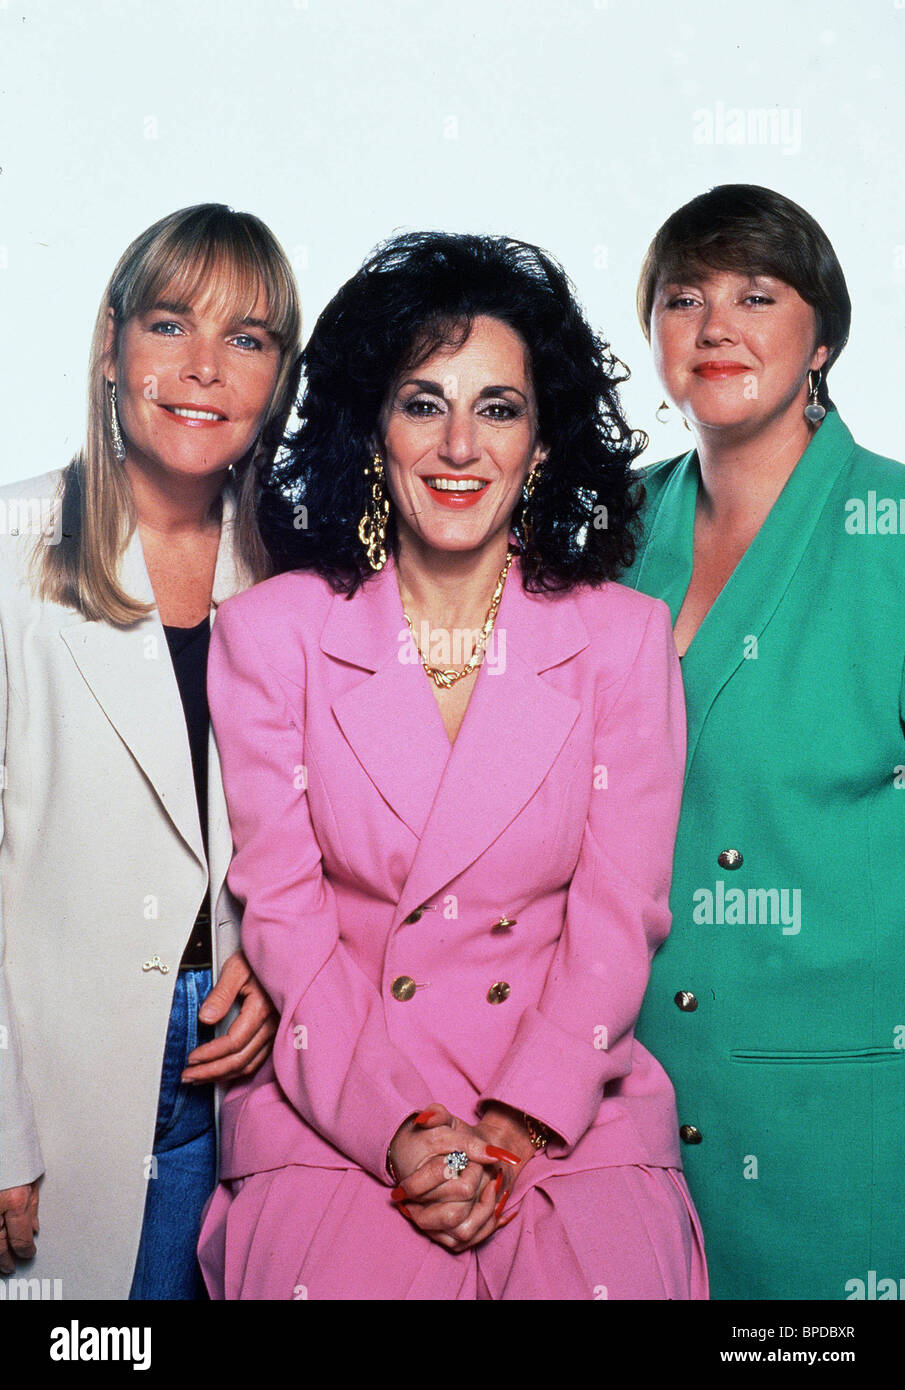 LINDA ROBSON, LESLIE JOSEPH, PAULINE QUIRKE, Birds Of A Feather, 1989 Photo Stock